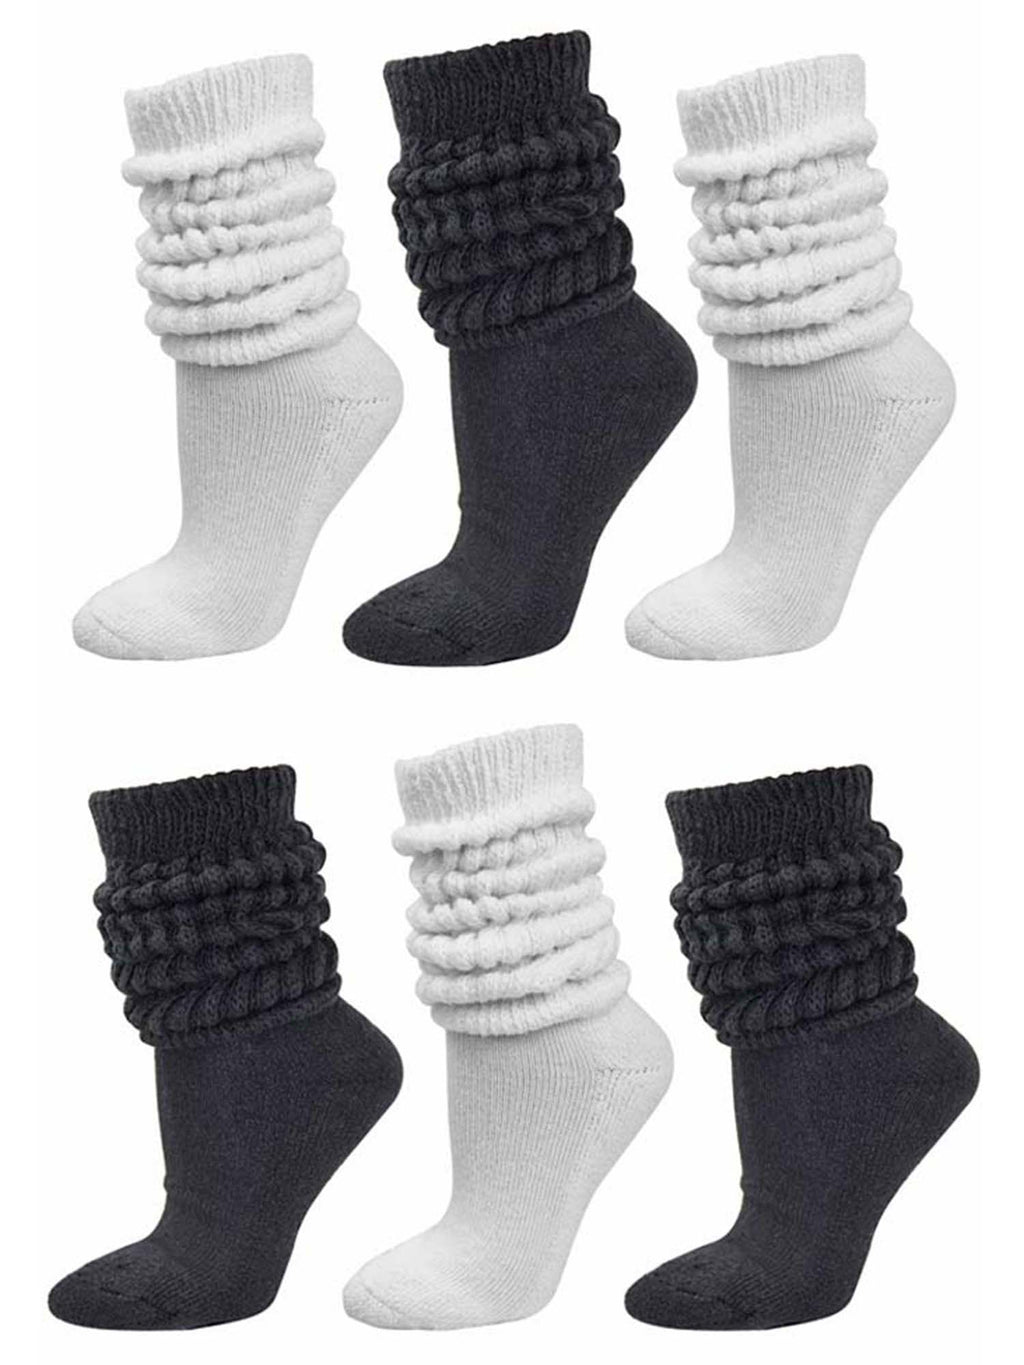 Black & White All Cotton 6-Pack Extra Heavy Super Slouch Socks